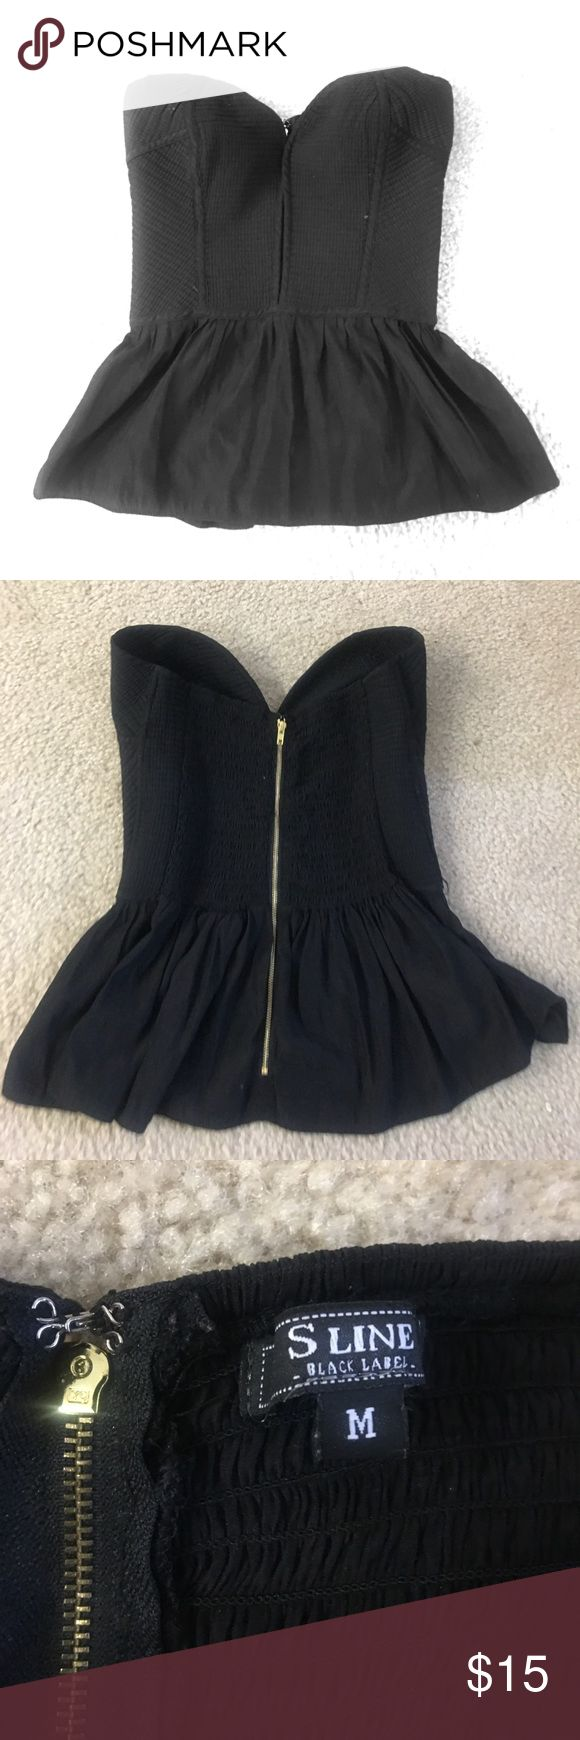 Black Peplum Top Such a cute top! Dips down in front and has a wire on the sides to give it a corset type feel. This is a medium but I would say it runs on the bigger side. Truthfully, I wouldn't recommend this top for anyone under a D cup. The cups on the shirt are fairly large and if they aren't filled out it gives the shirt a strange fit. I am a 34D/DD and it fits me.  Worn once, excellent condition. S Line Tops